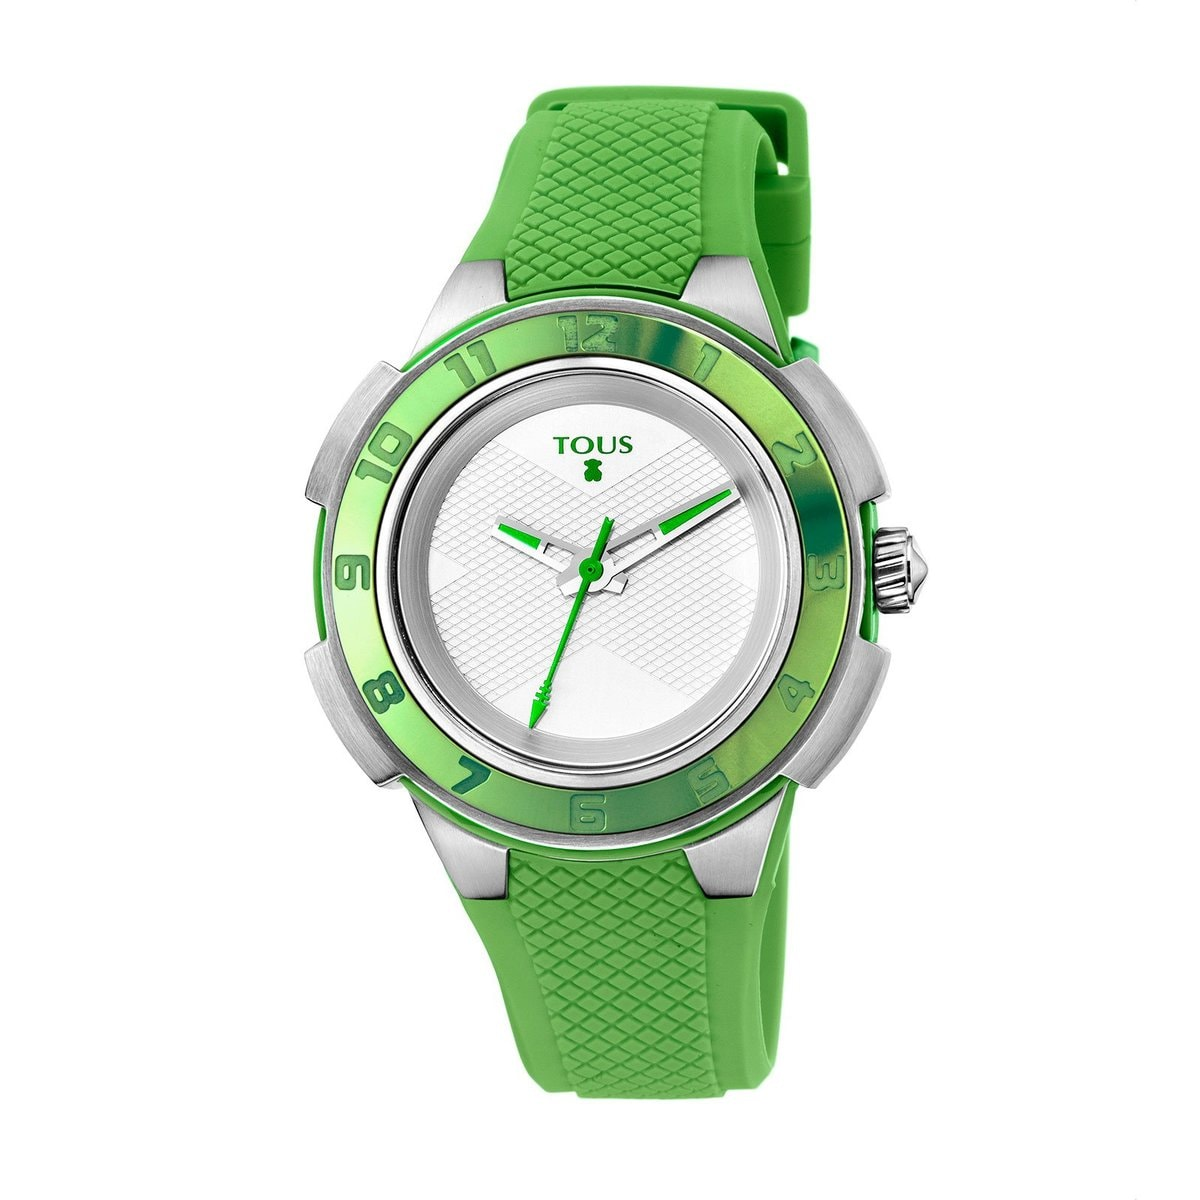 Two-tone Steel/green anodized Aluminum Xtous Colors Watch with green Silicone strap